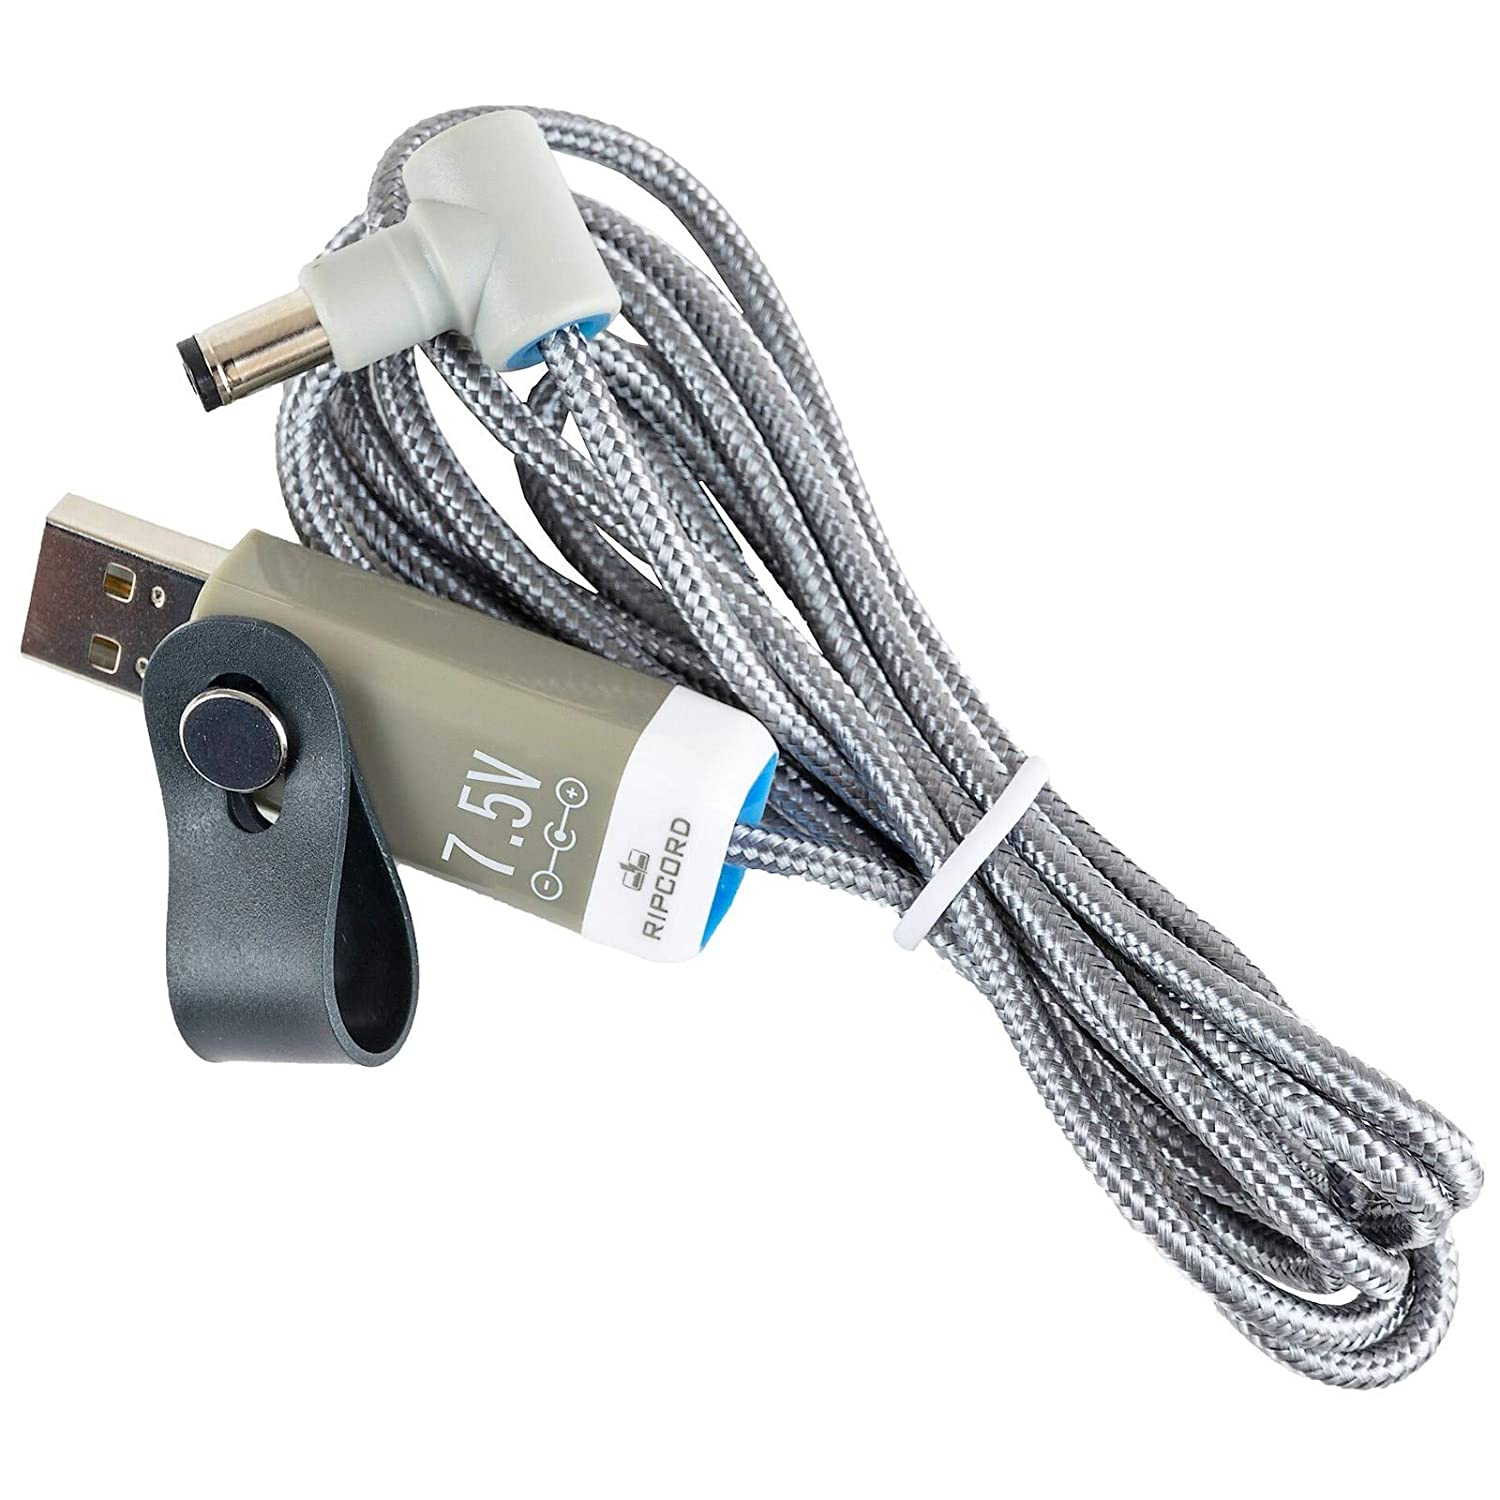 myVolts Ripcord USB to 7.5V DC Power Cable Compatible with The Brother PT-310 Label Printer